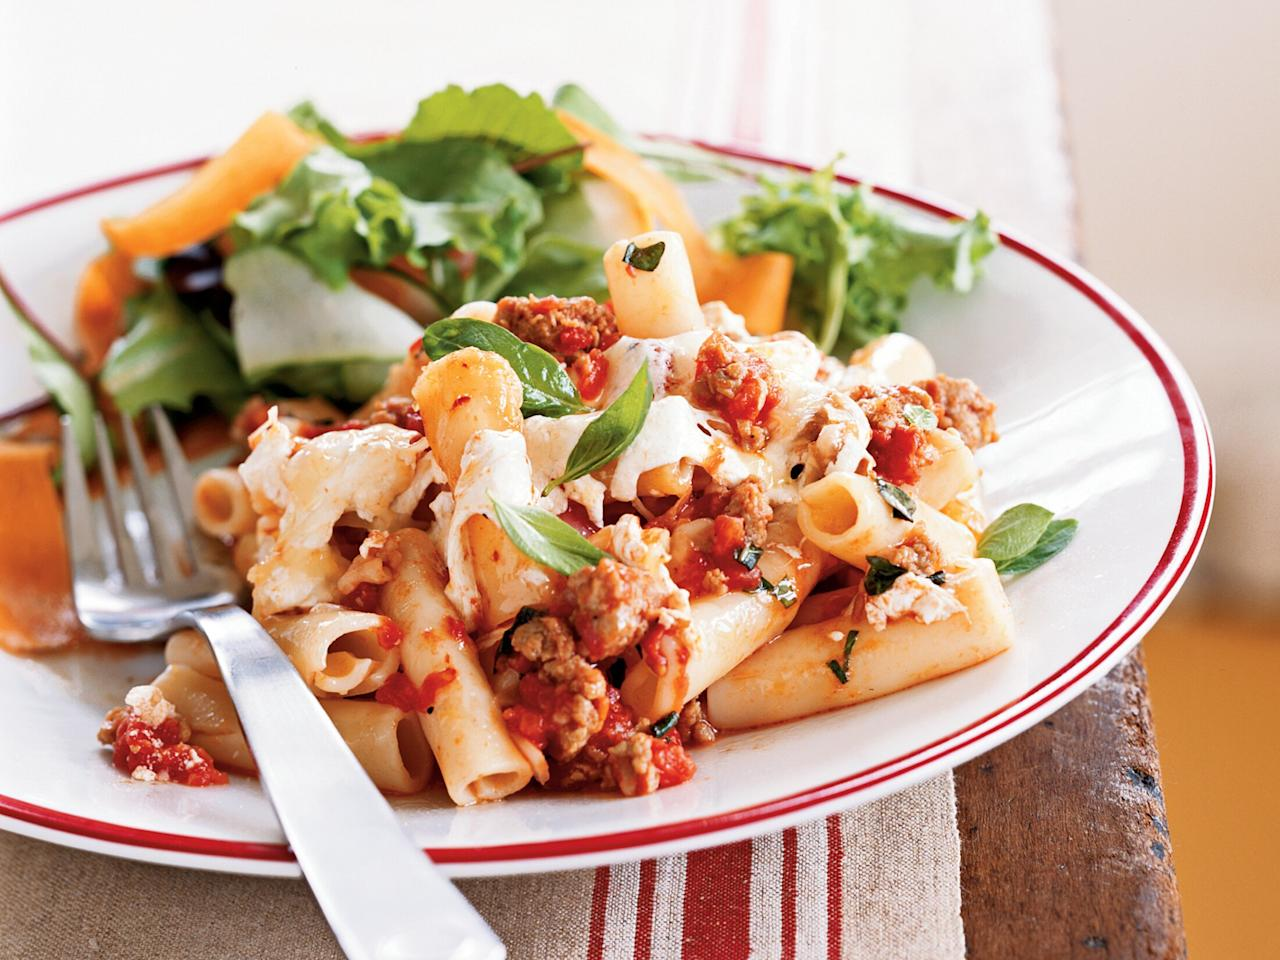 "<p>This easy, cheesy pasta recipe features ziti, turkey sausage, canned tomatoes, and fresh basil. It's a perfect pasta dish for busy weeknights.</p> <p><a href=""https://www.myrecipes.com/recipe/baked-pasta-with-sausage-tomatoes-cheese"">Baked Pasta with Sausage, Tomatoes, and Cheese Recipe</a></p>"